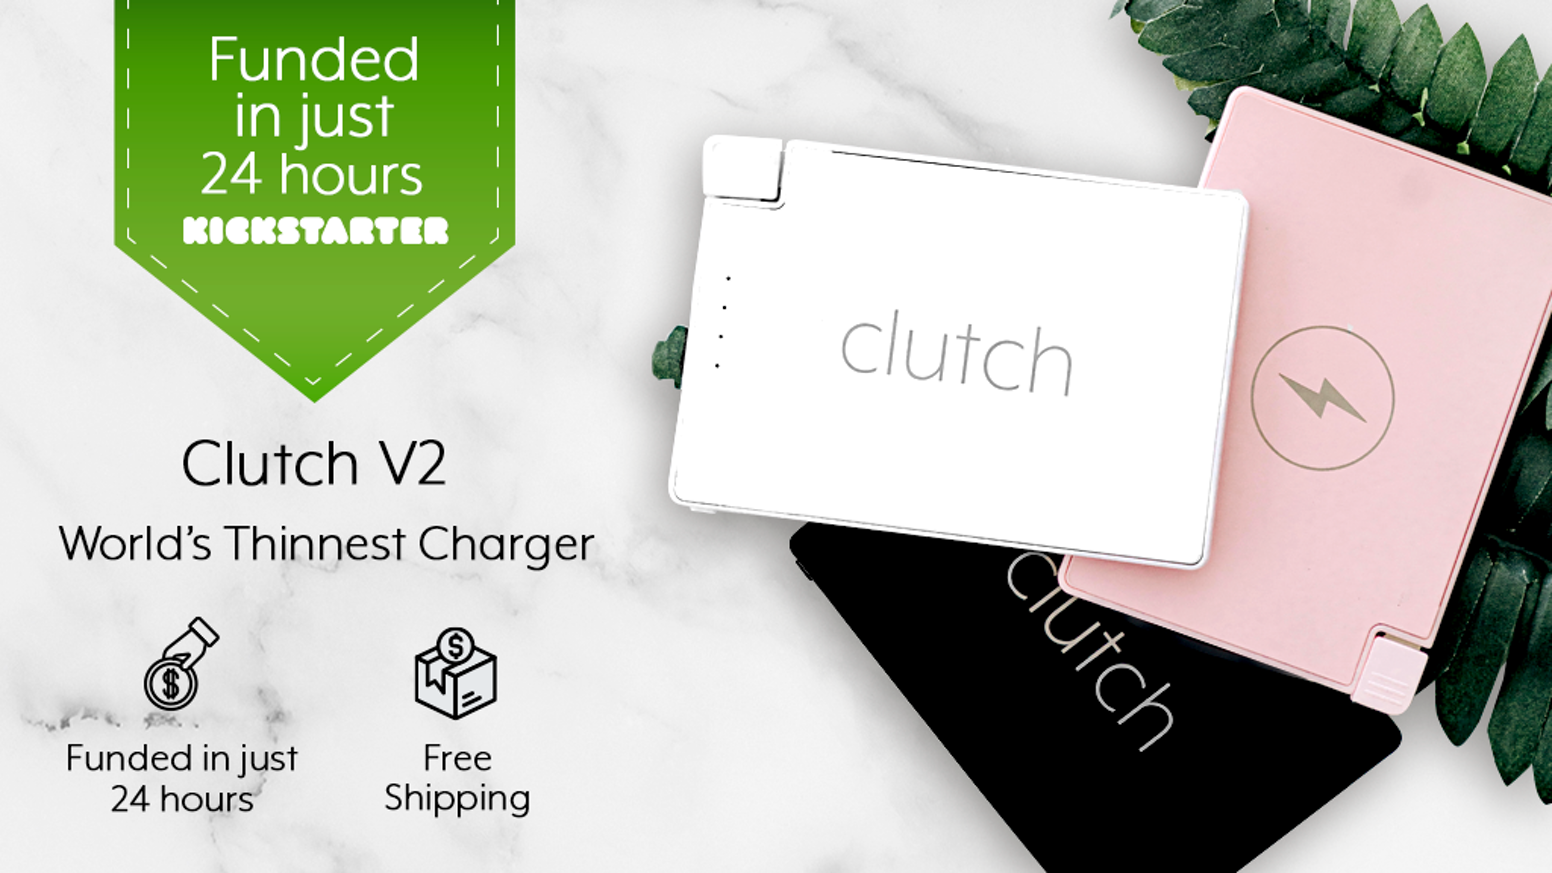 World's Thinnest Charger